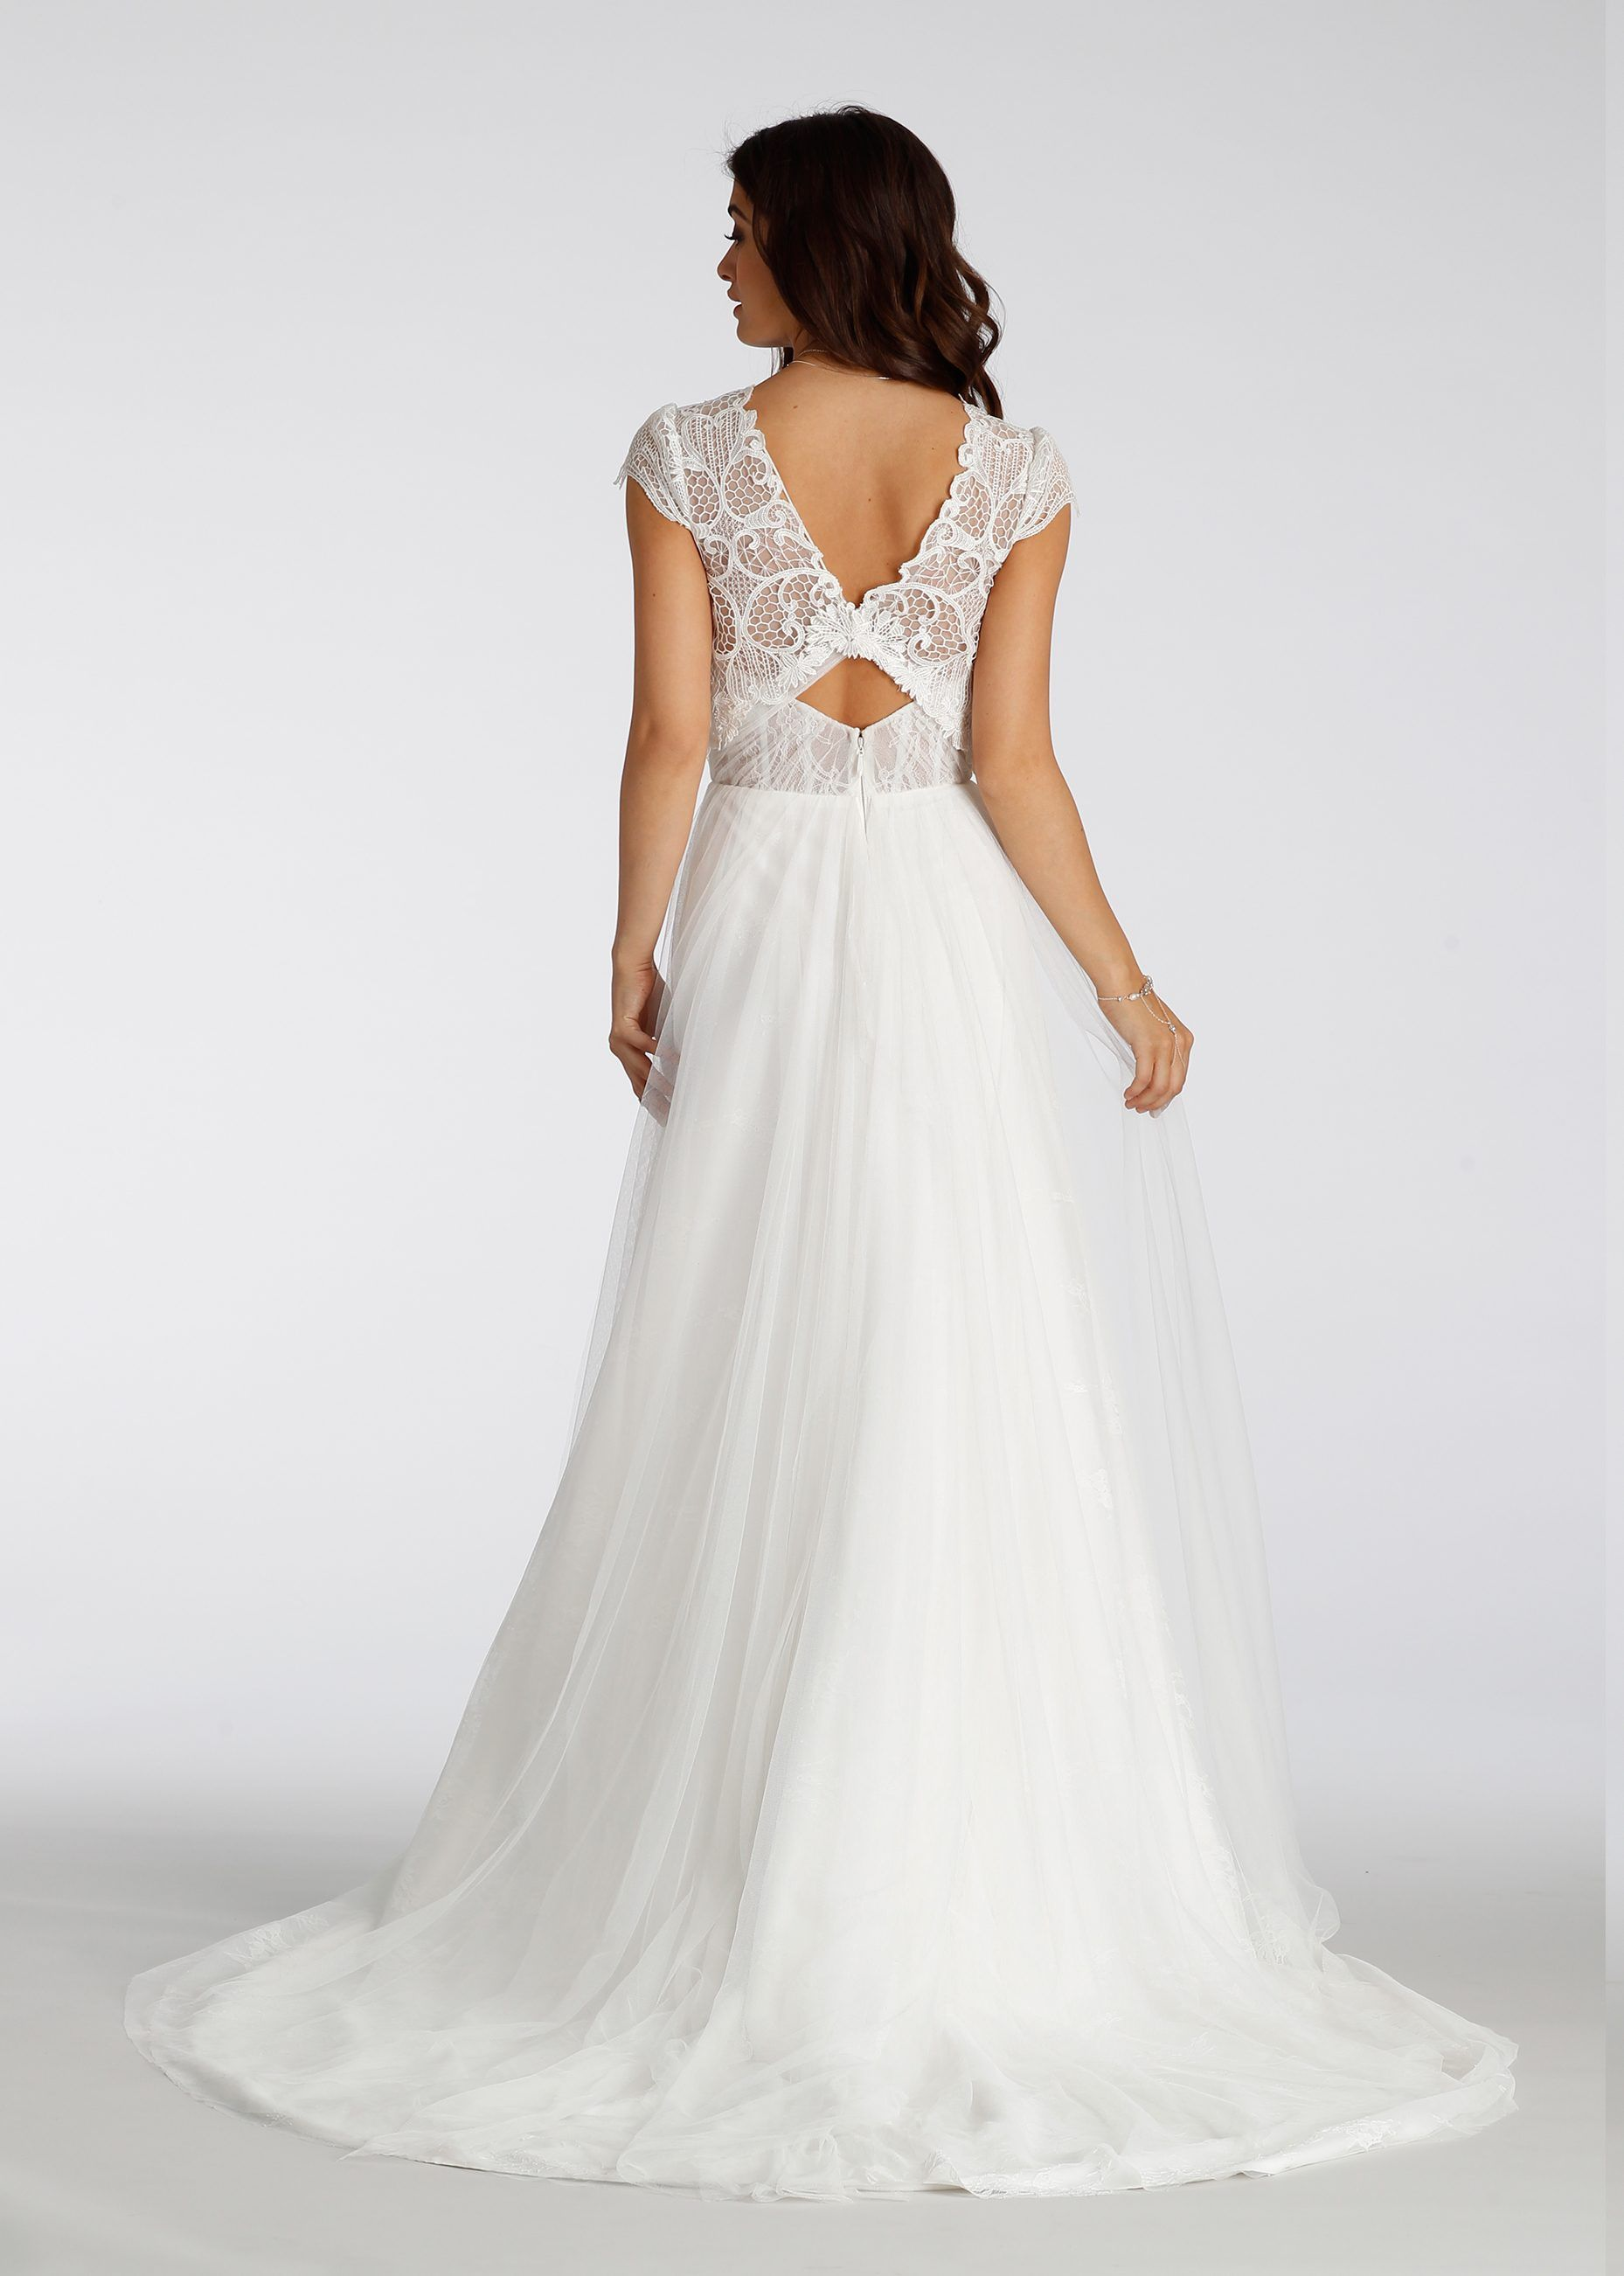 Style back view personal life pinterest bridal gowns